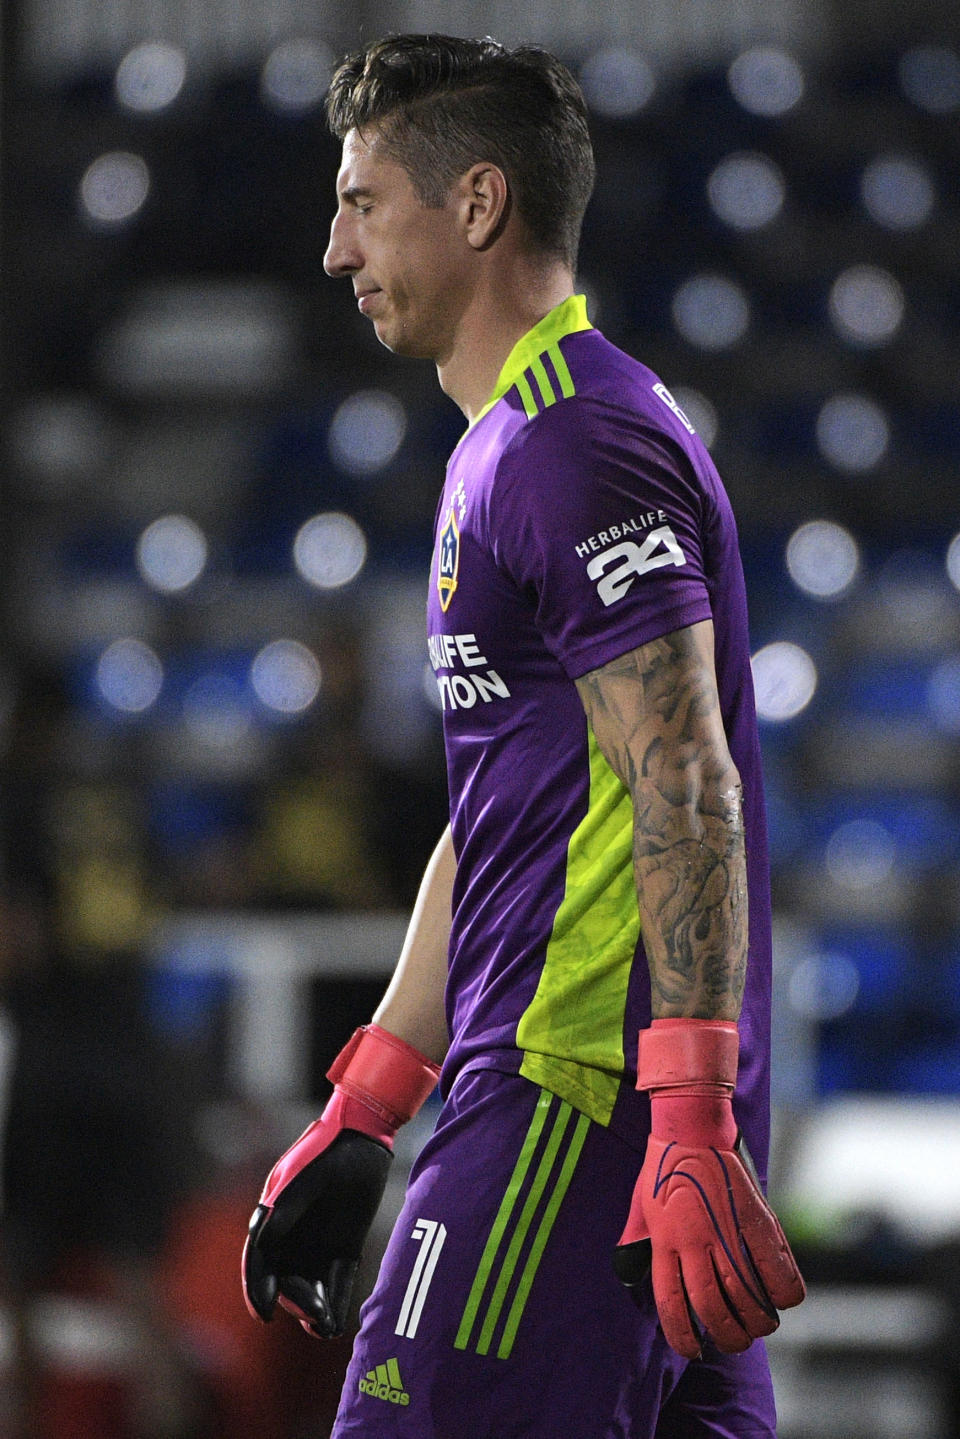 LA Galaxy goalkeeper David Bingham (1) reacts after giving up a goal to Los Angeles FC forward Diego Rossi during the second half of an MLS soccer match, early Sunday, July 19, 2020, in Kissimmee, Fla. (AP Photo/Phelan M. Ebenhack)